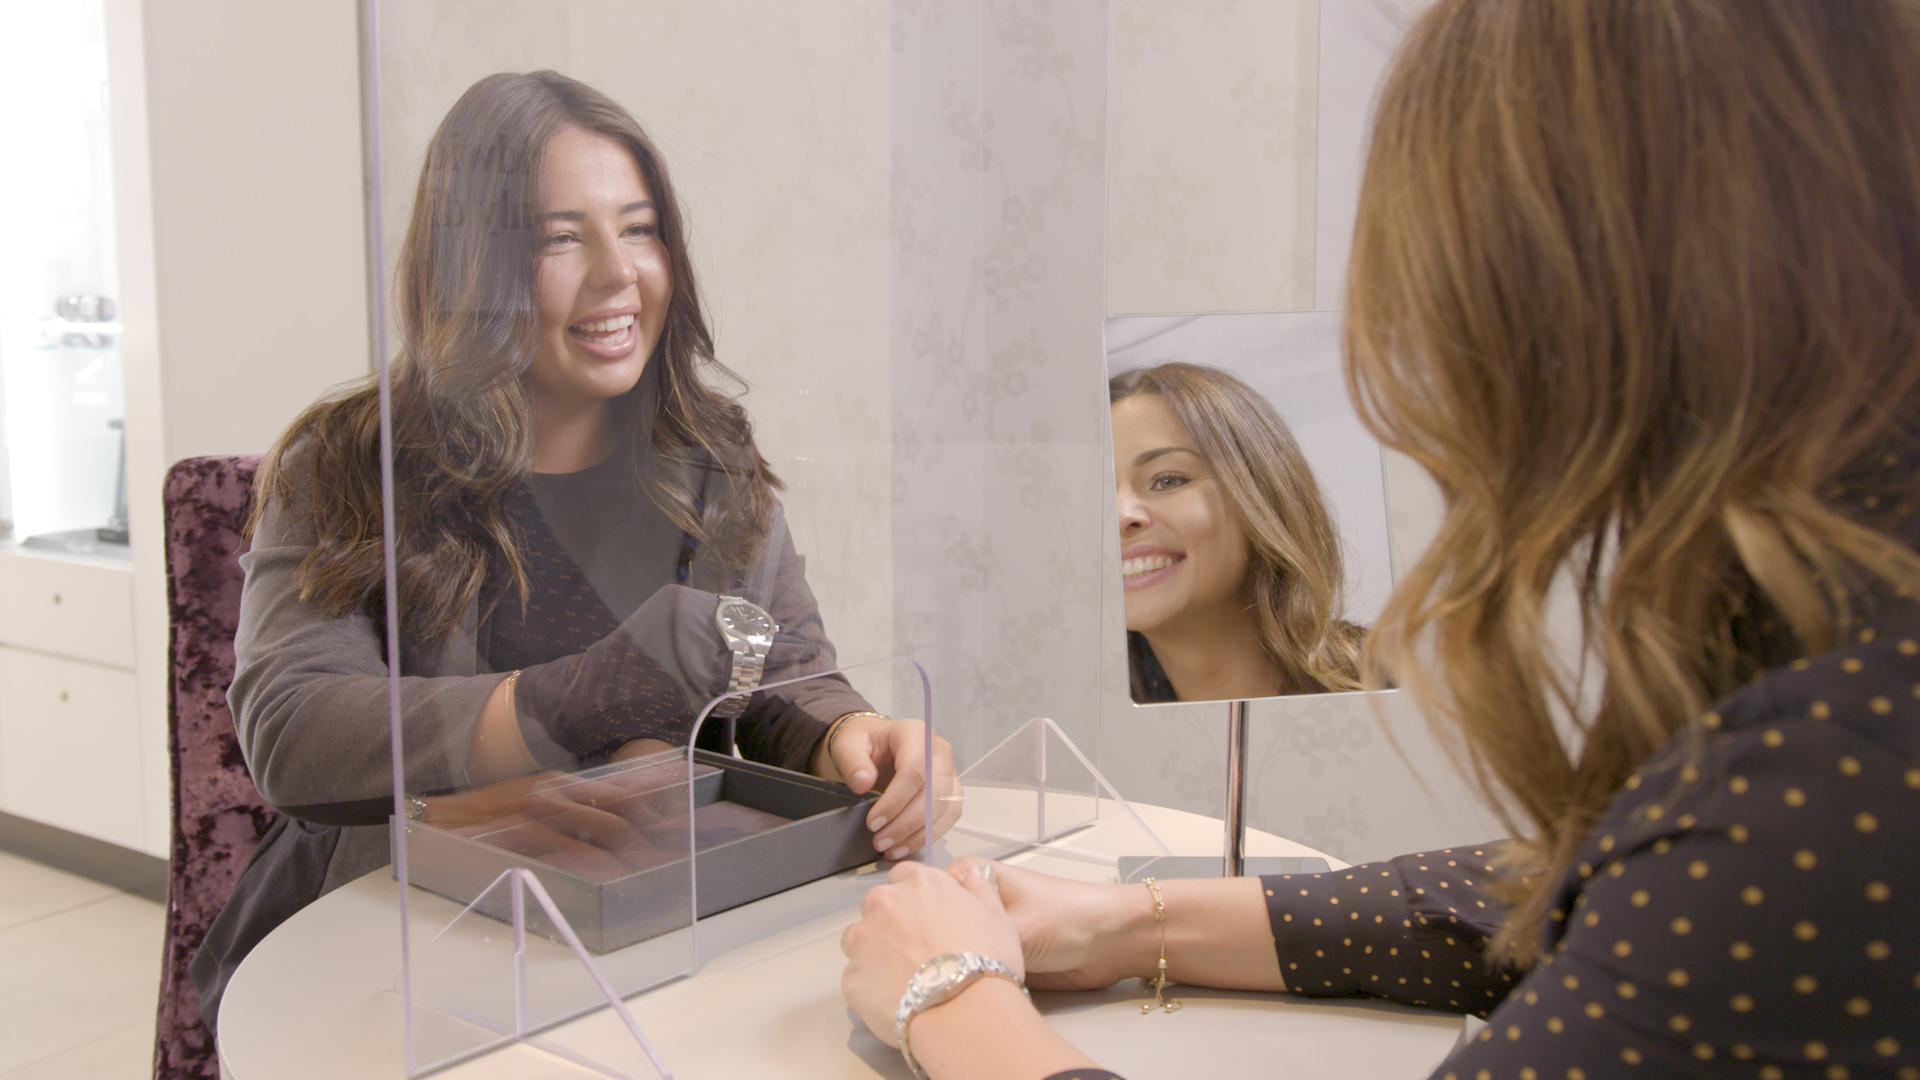 08 First look at a jewellery shopping experience as stores reopen